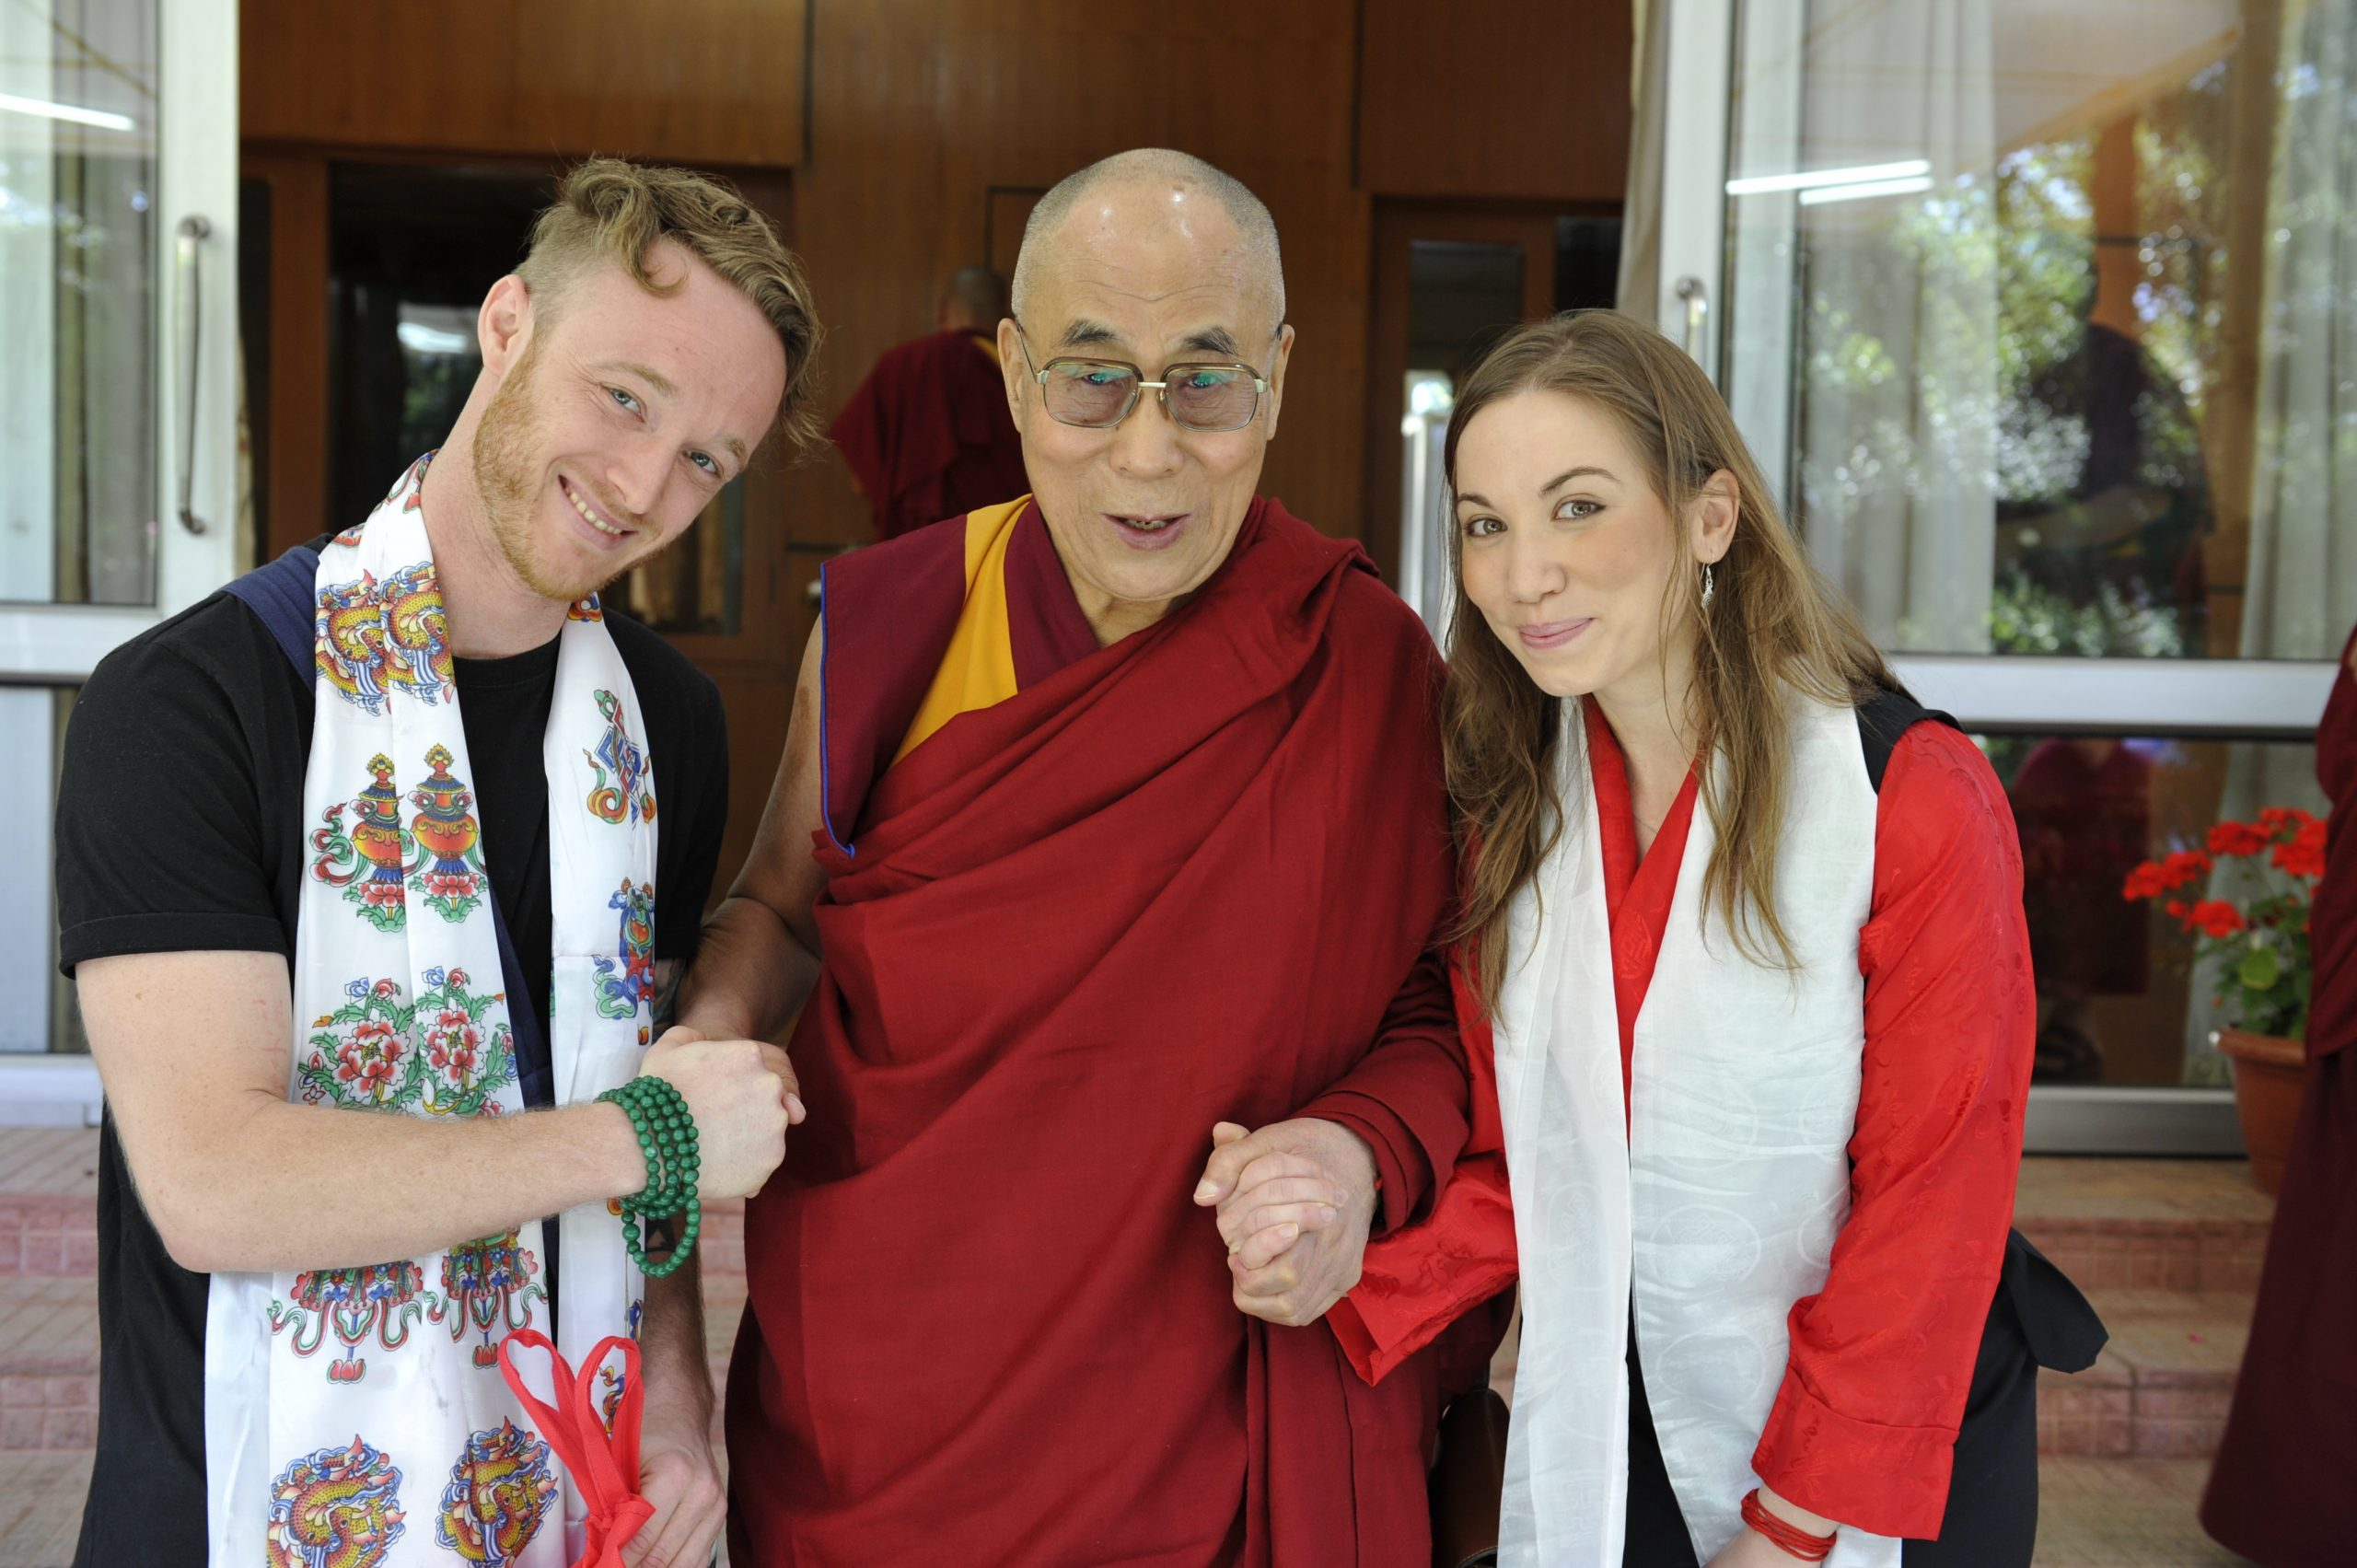 The Dalai Lama Will Release His First Album In July